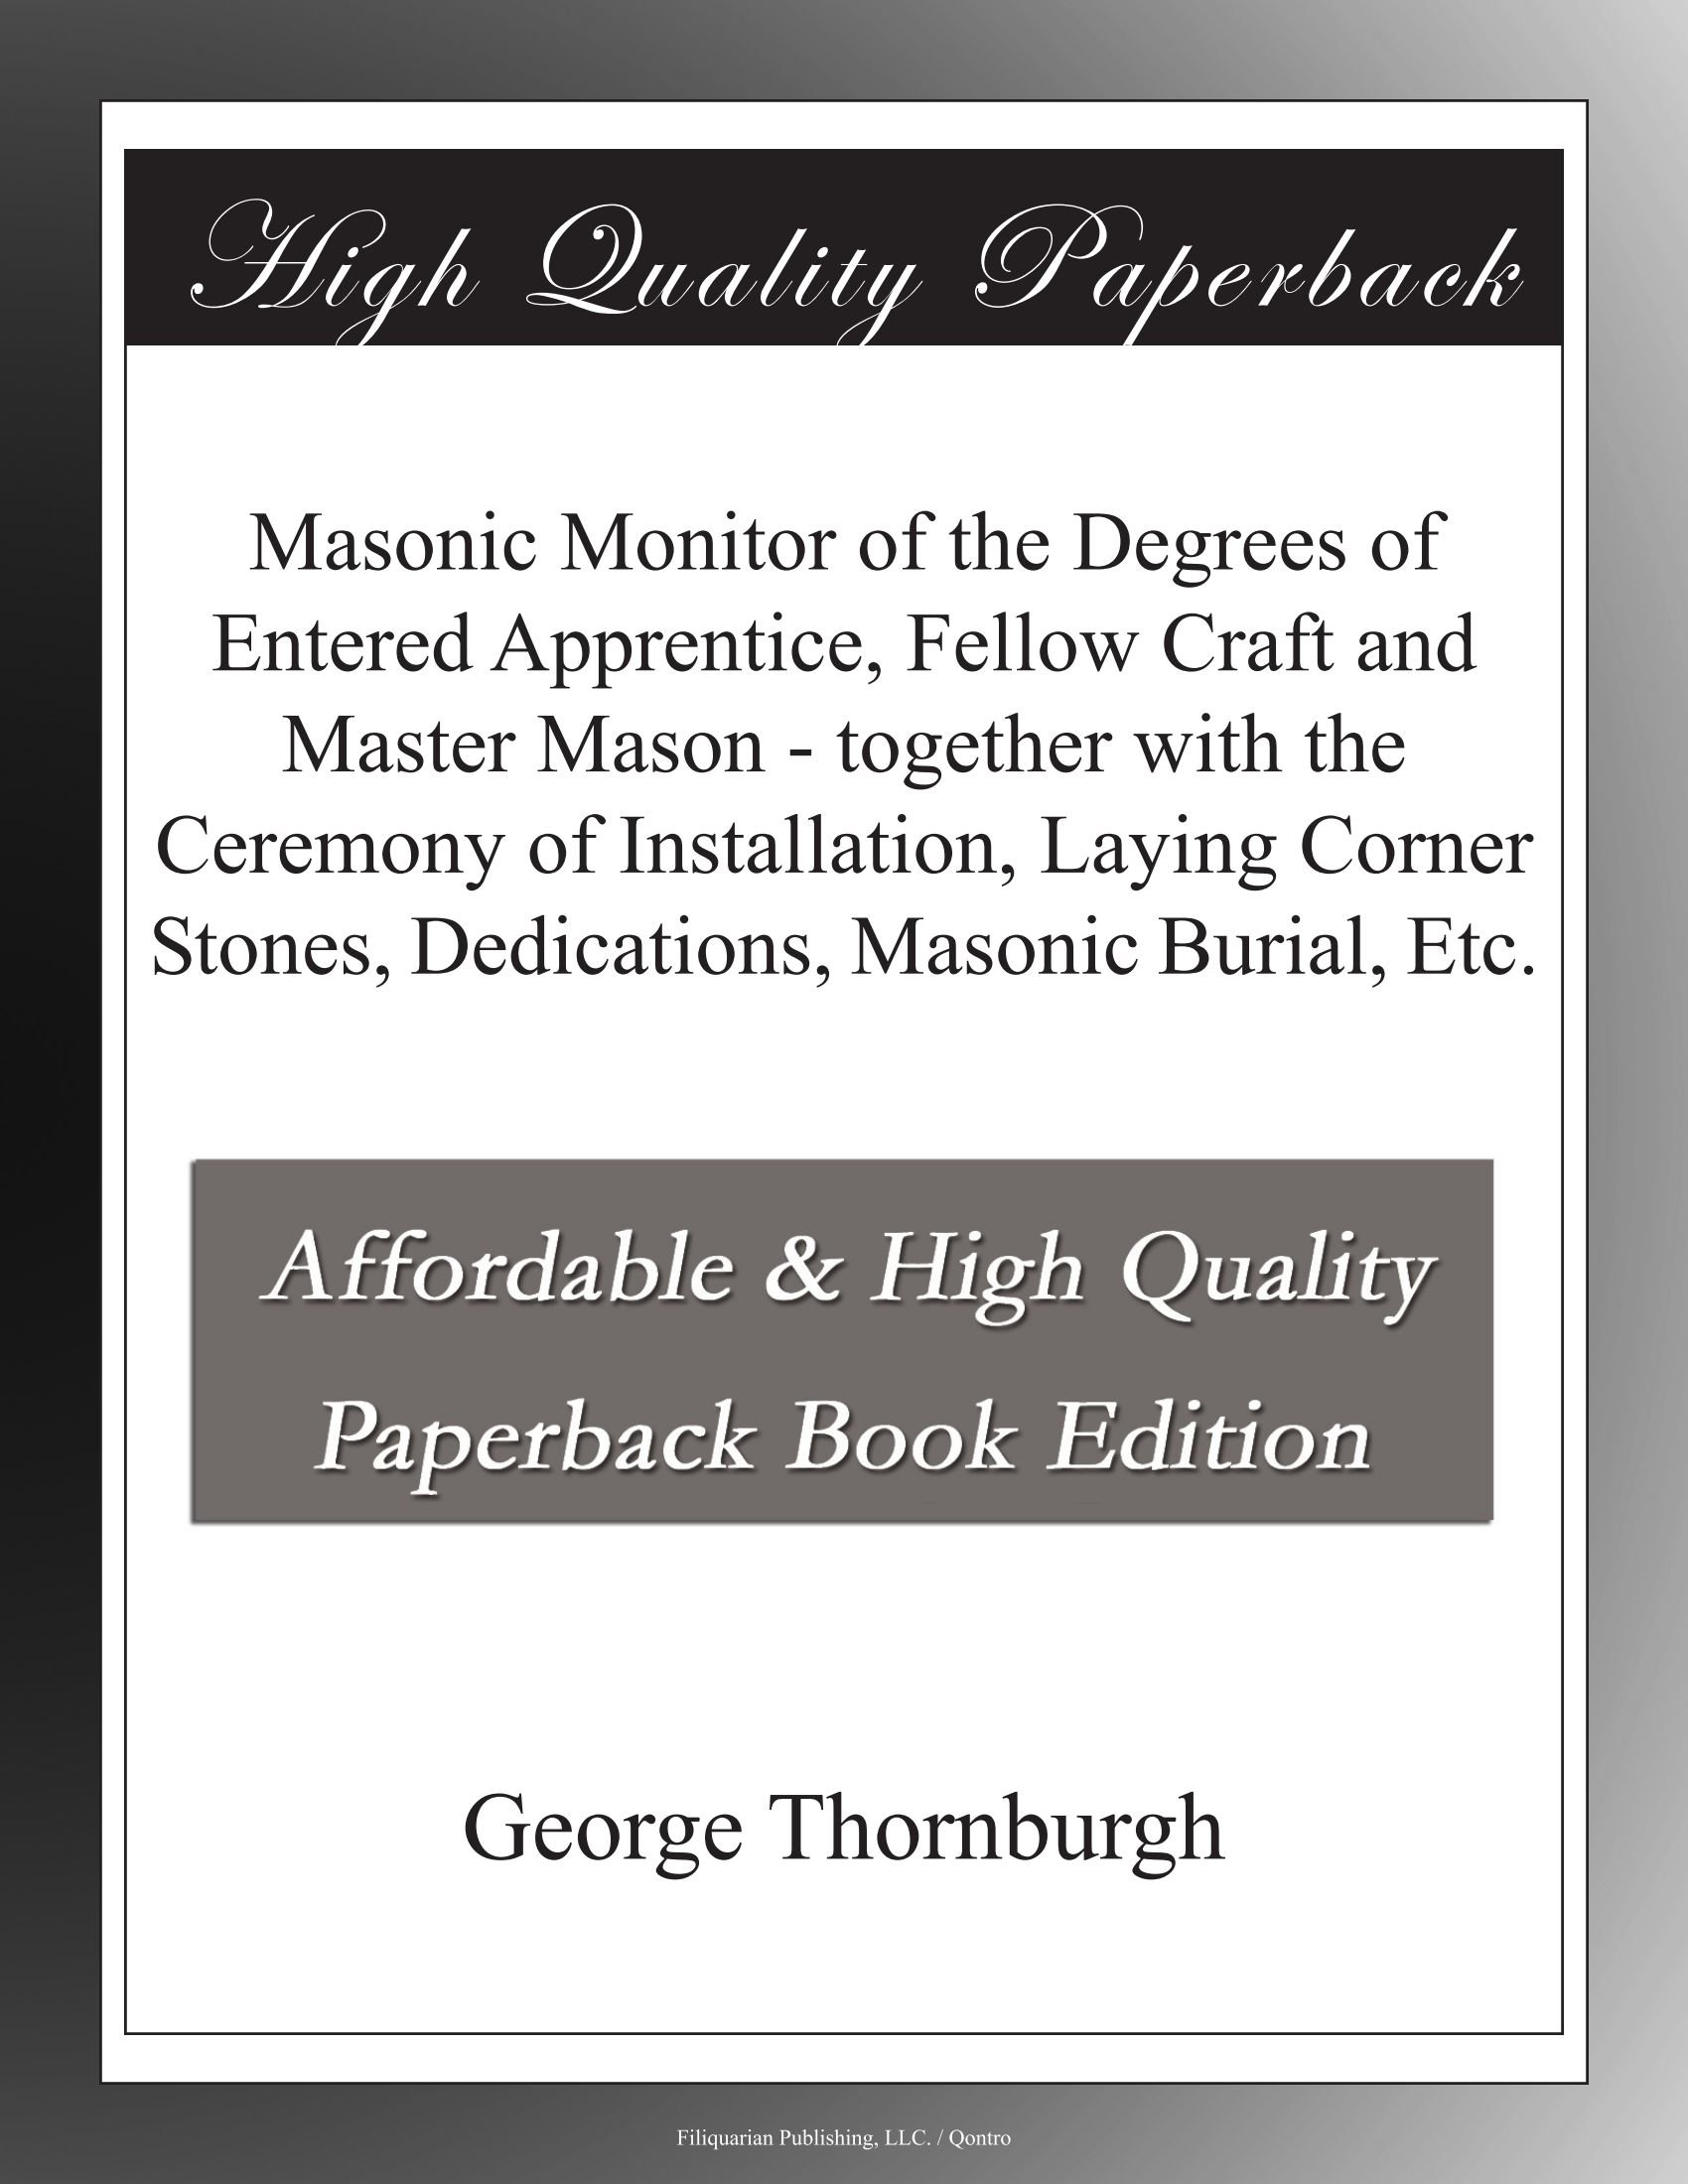 Standard masonic monitor of the degrees of entered apprentice, fellow craft and master mason